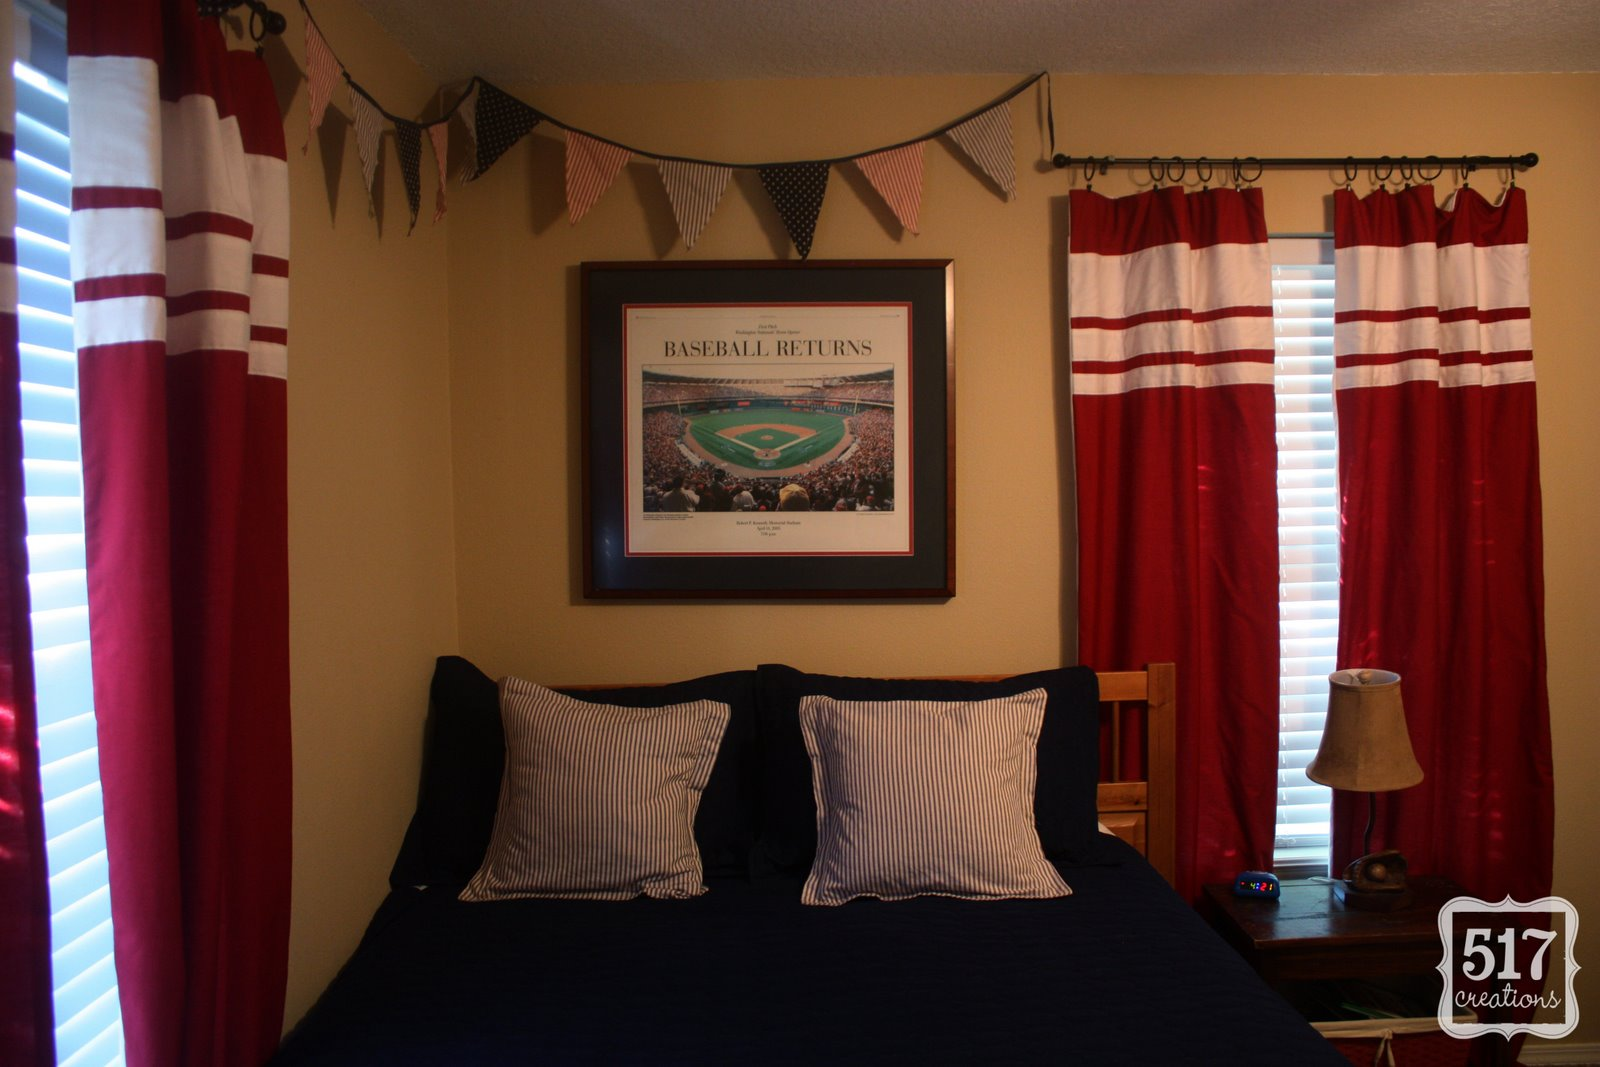 Red curtains walmart - I Came Across Some Twin Sized Red Flat Sheets At Wal Mart For 5 And Thought They Would Be Perfect I Bought 2 Red Flat Sheets I Cut One Sheet In Half To